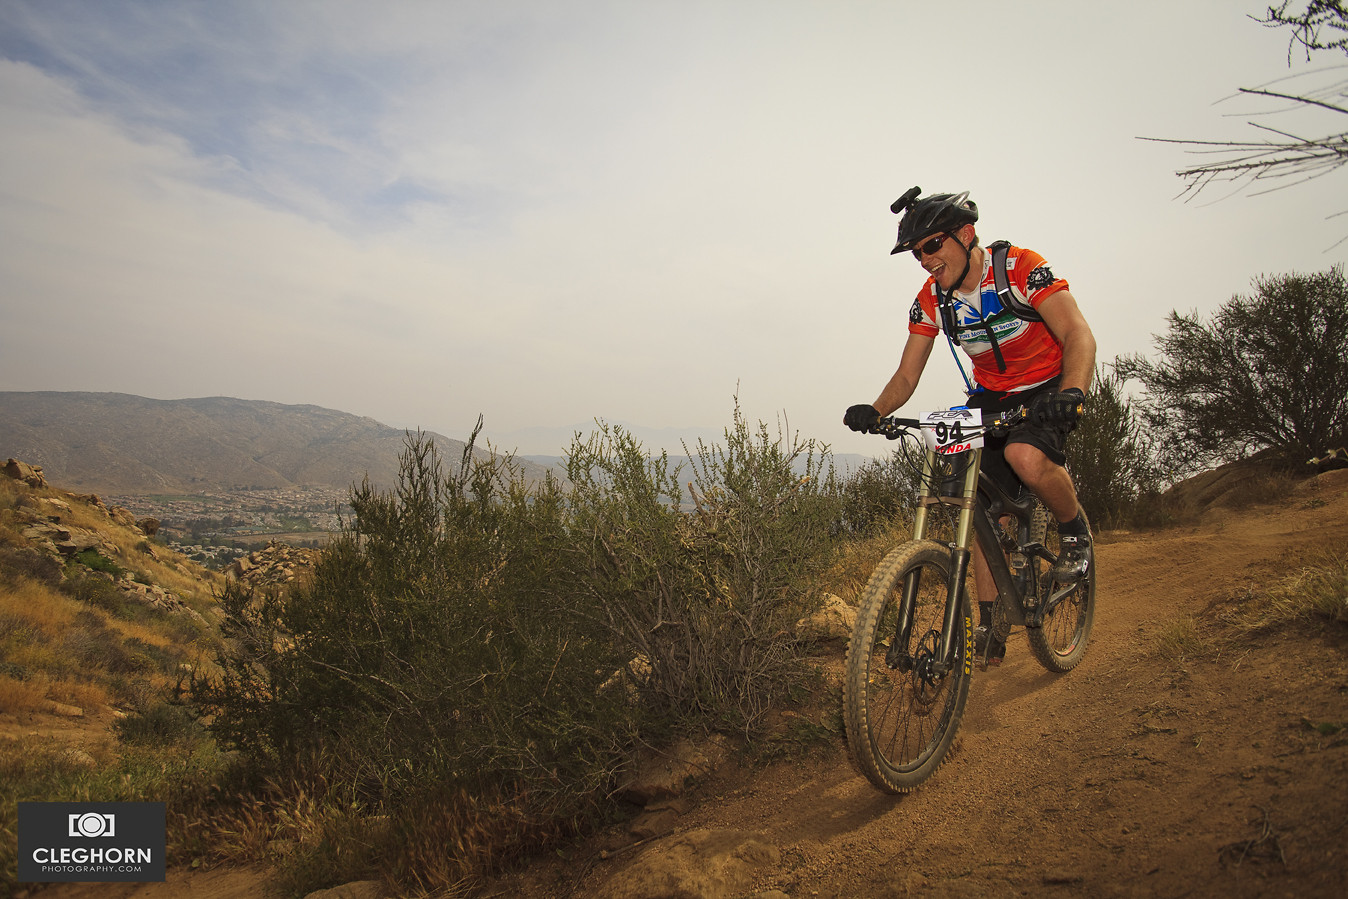 Keep smiling! - Cleghorn Photography - Mountain Biking Pictures - Vital MTB